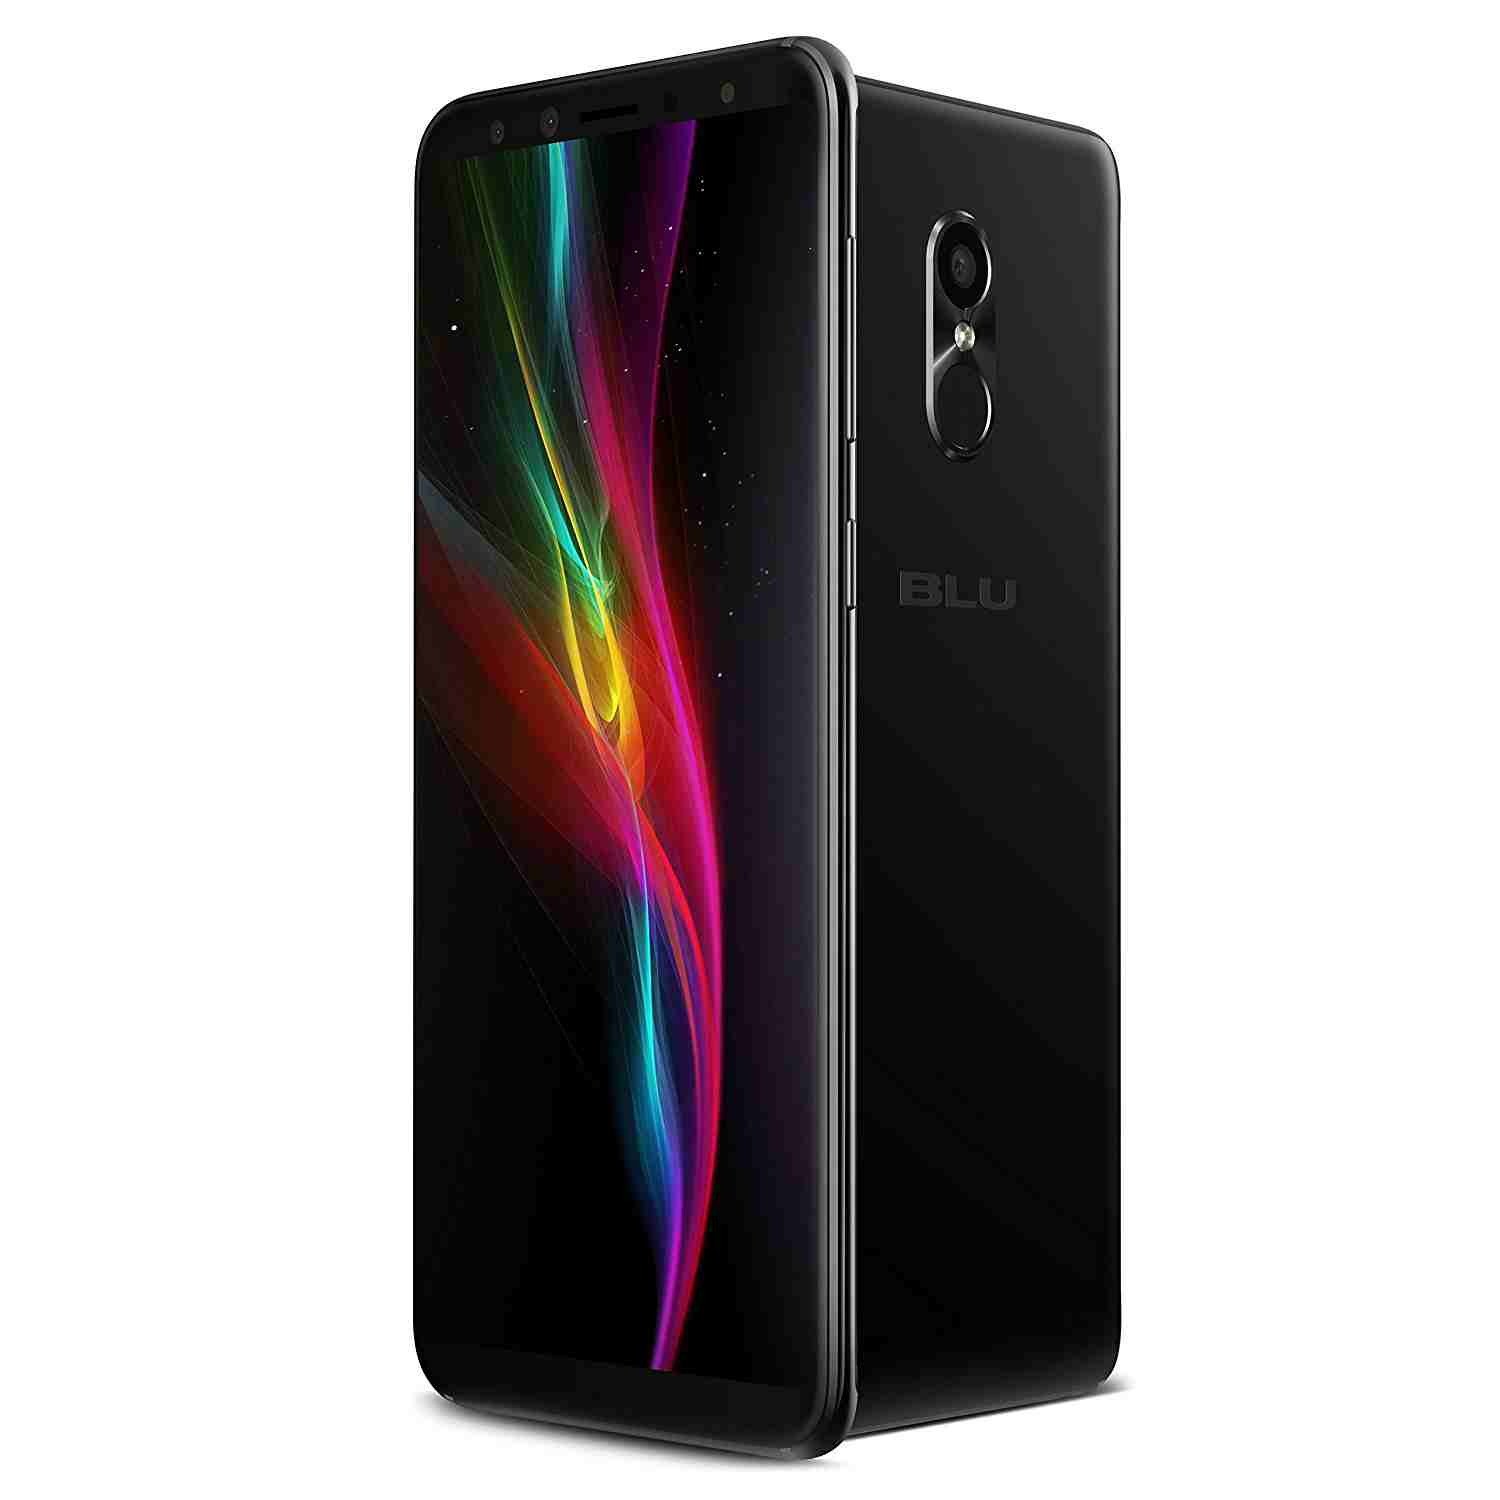 Blu Pure View Specifications